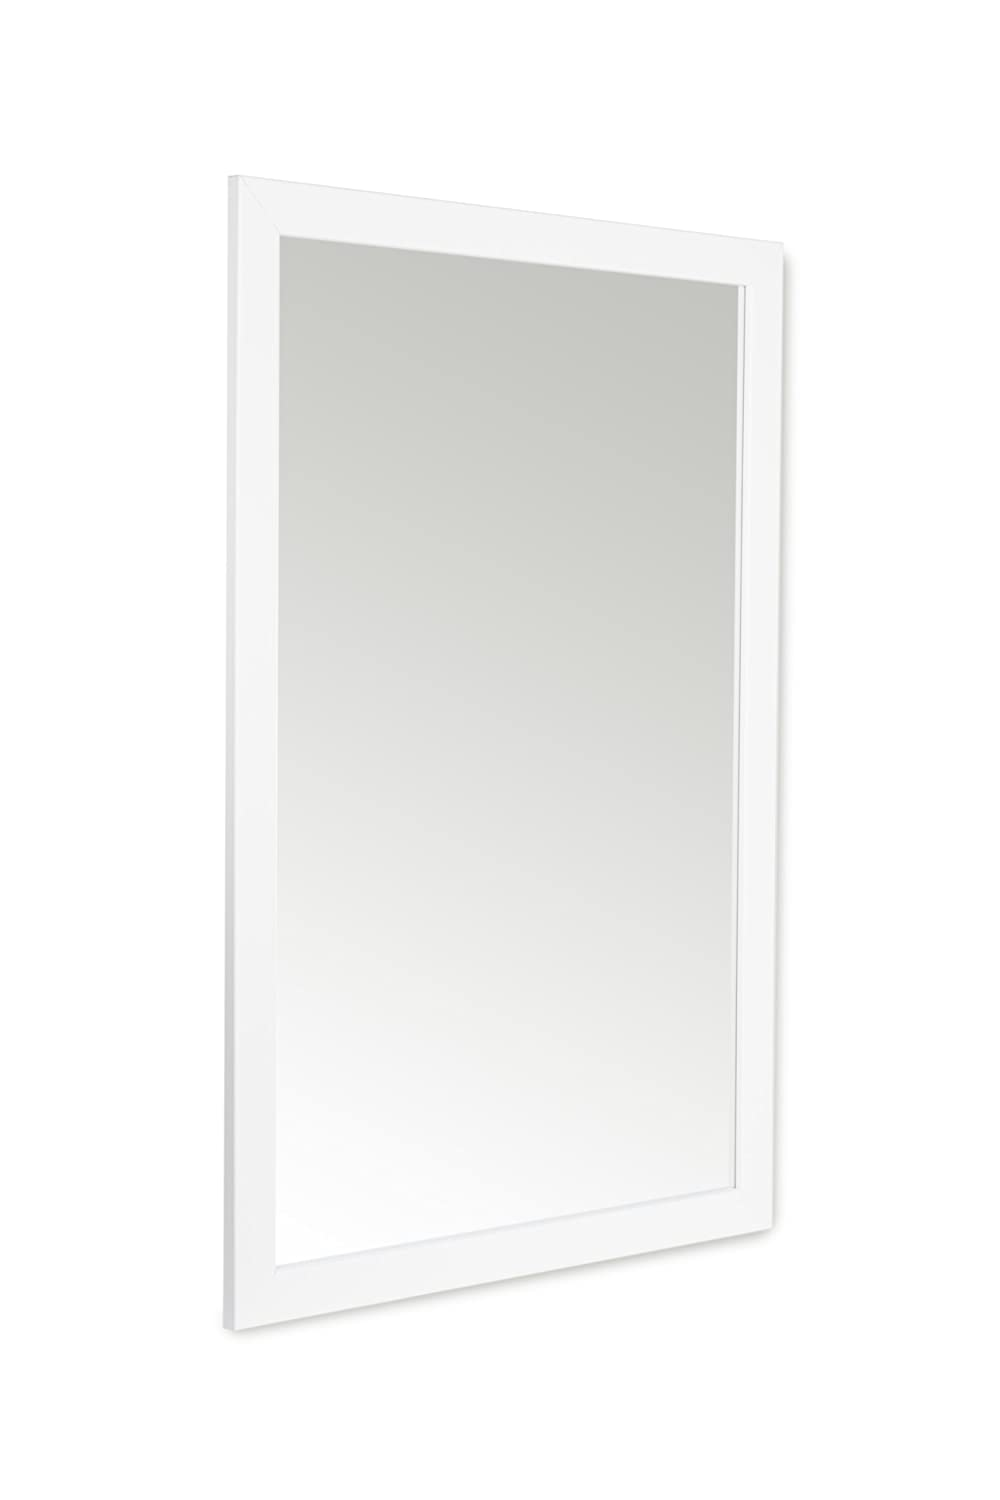 58 x 84cm White Framed Mirror with Wall Hanging Fixings